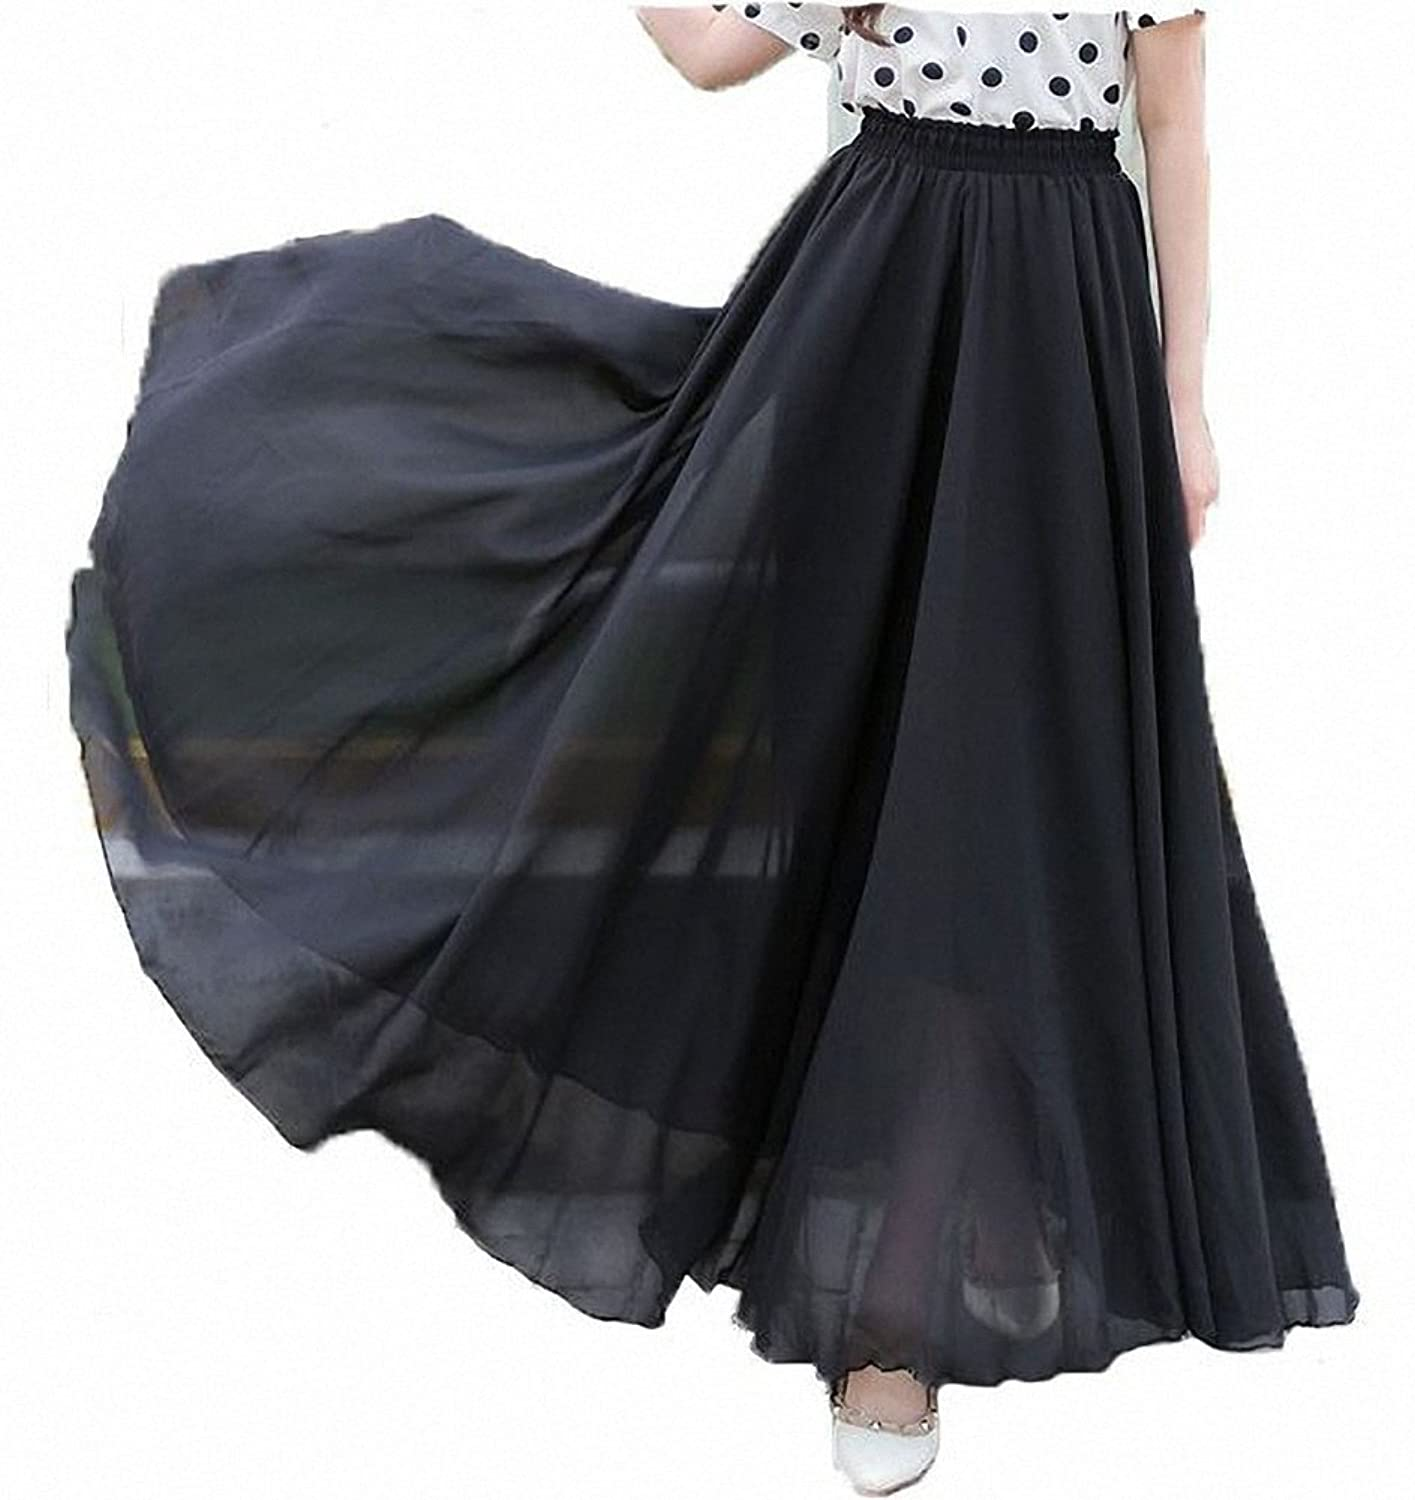 Victorian Clothing, Costumes & 1800s Fashion Afibi Womens Chiffon Retro Long Maxi Skirt Vintage Dress $15.69 AT vintagedancer.com